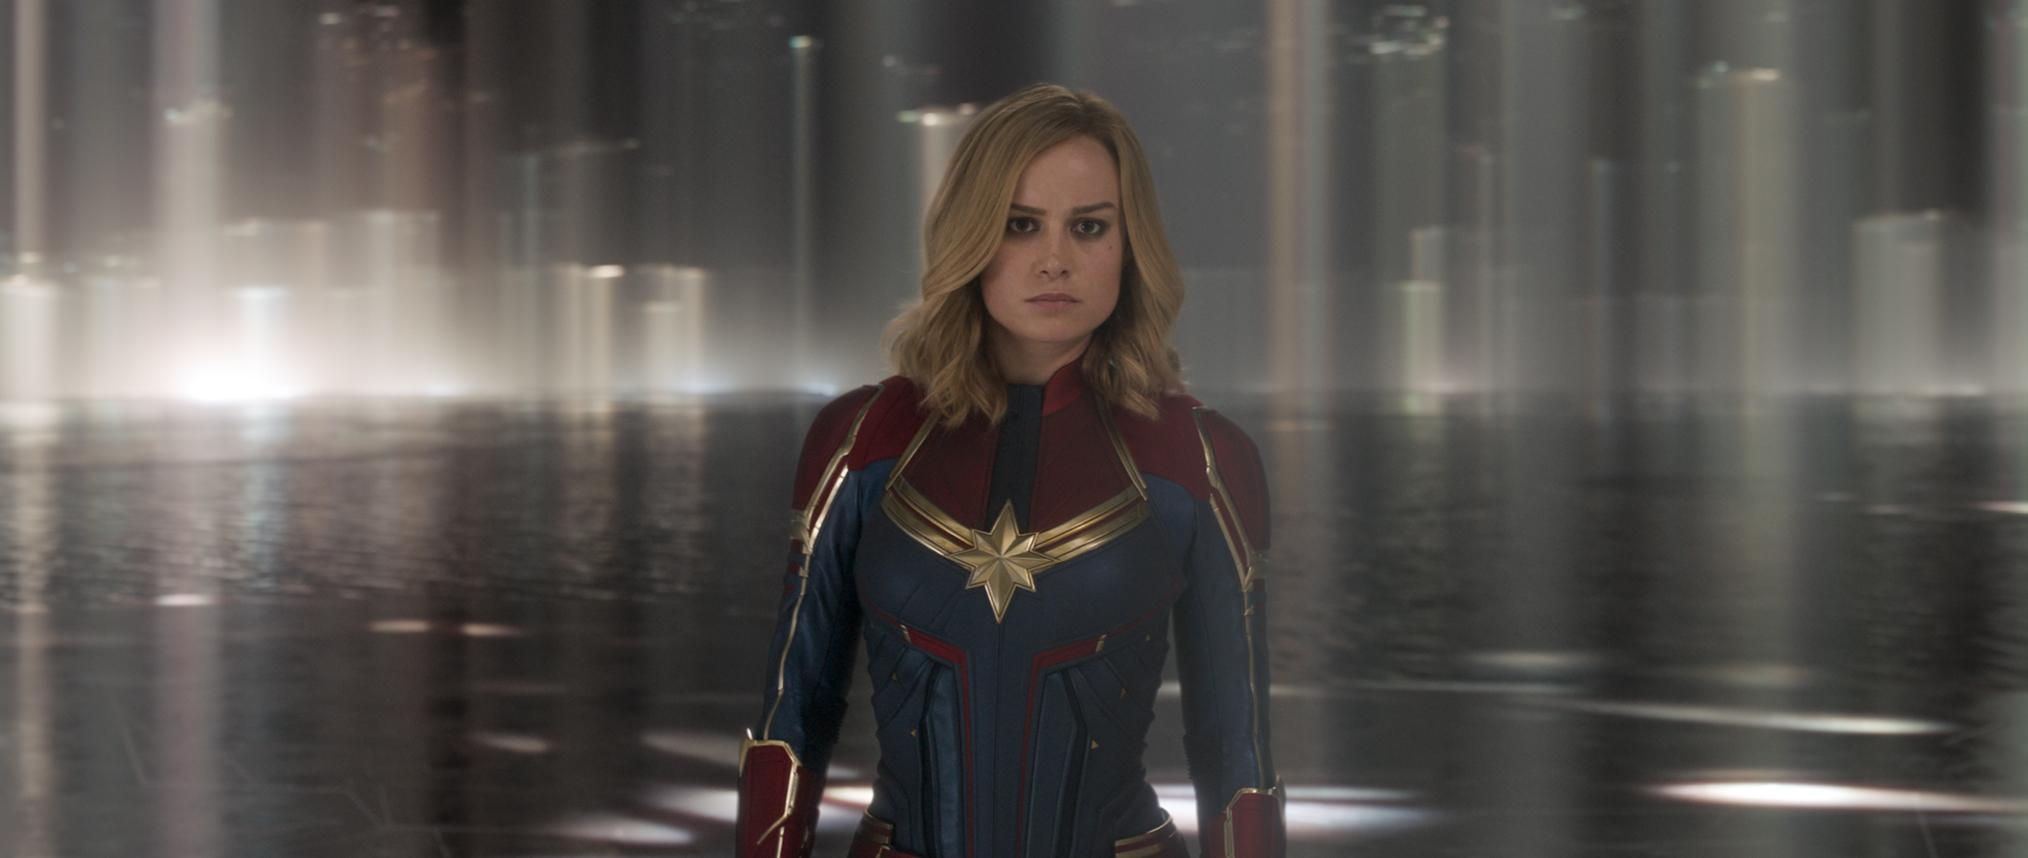 #CaptainMarvel Captain Marvel